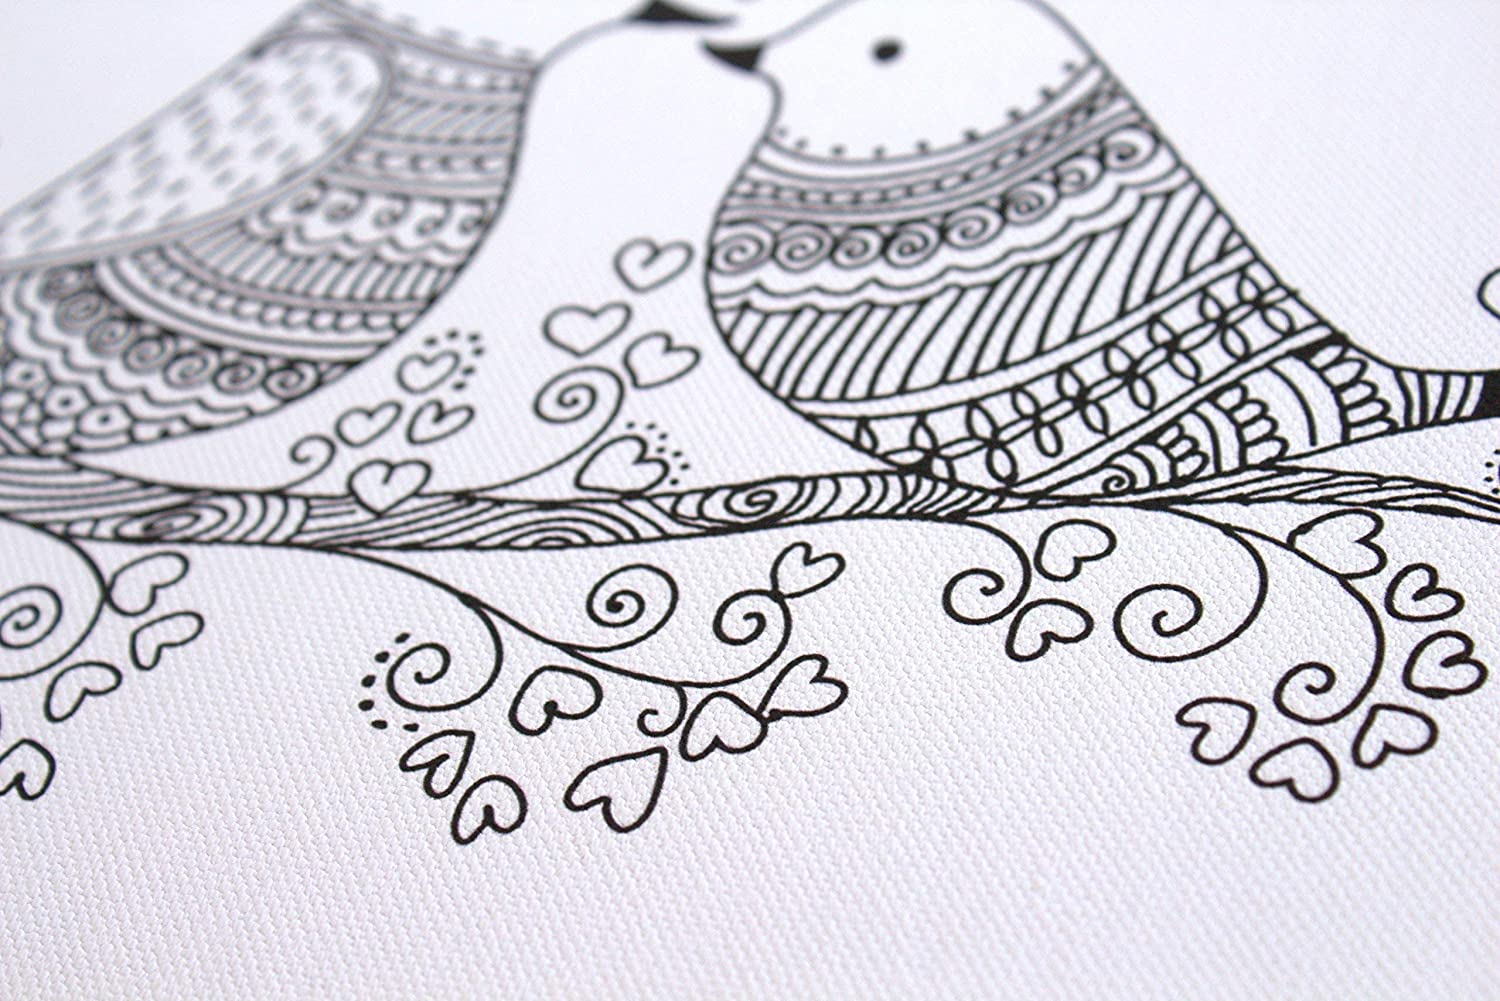 Stretched primed canvas to color 12 x 8 Inches Lovebirds Coloring Canvas For Adults